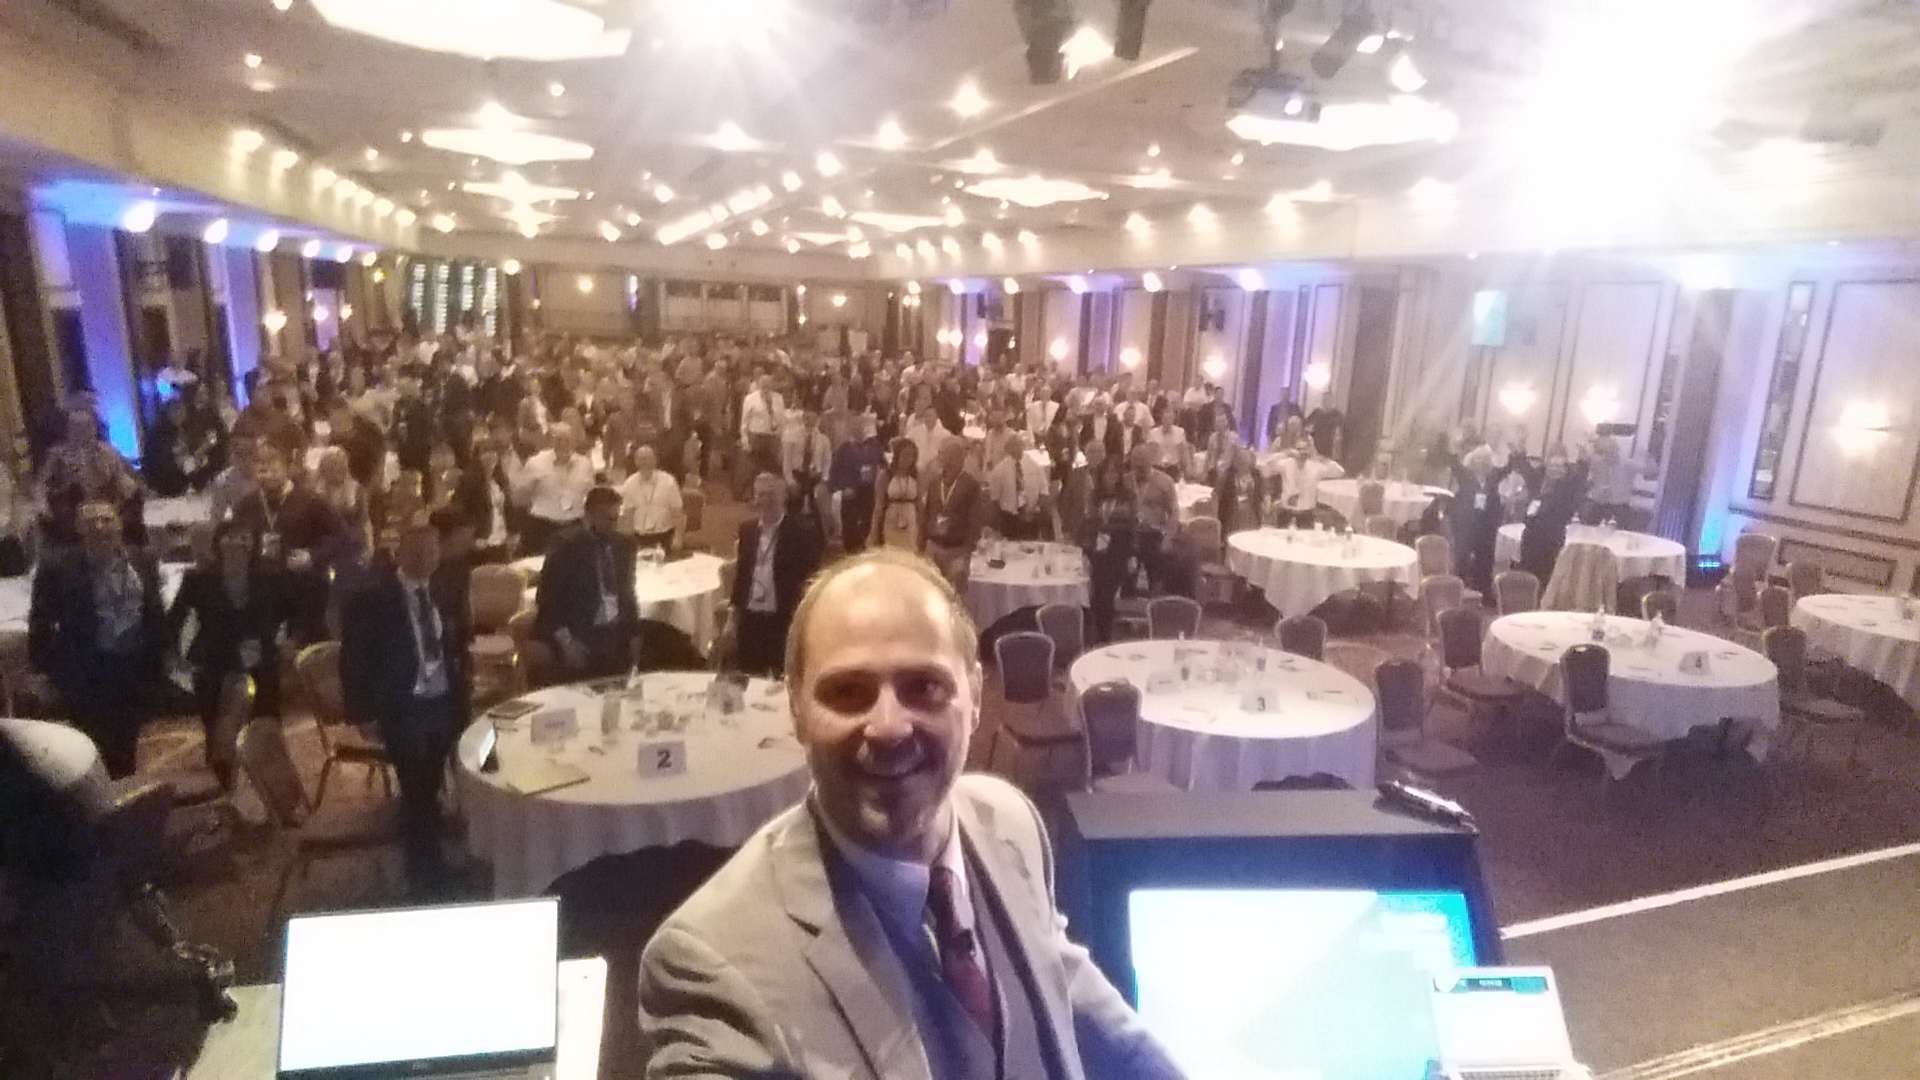 Jeremy opens the conference with a selfie high-res